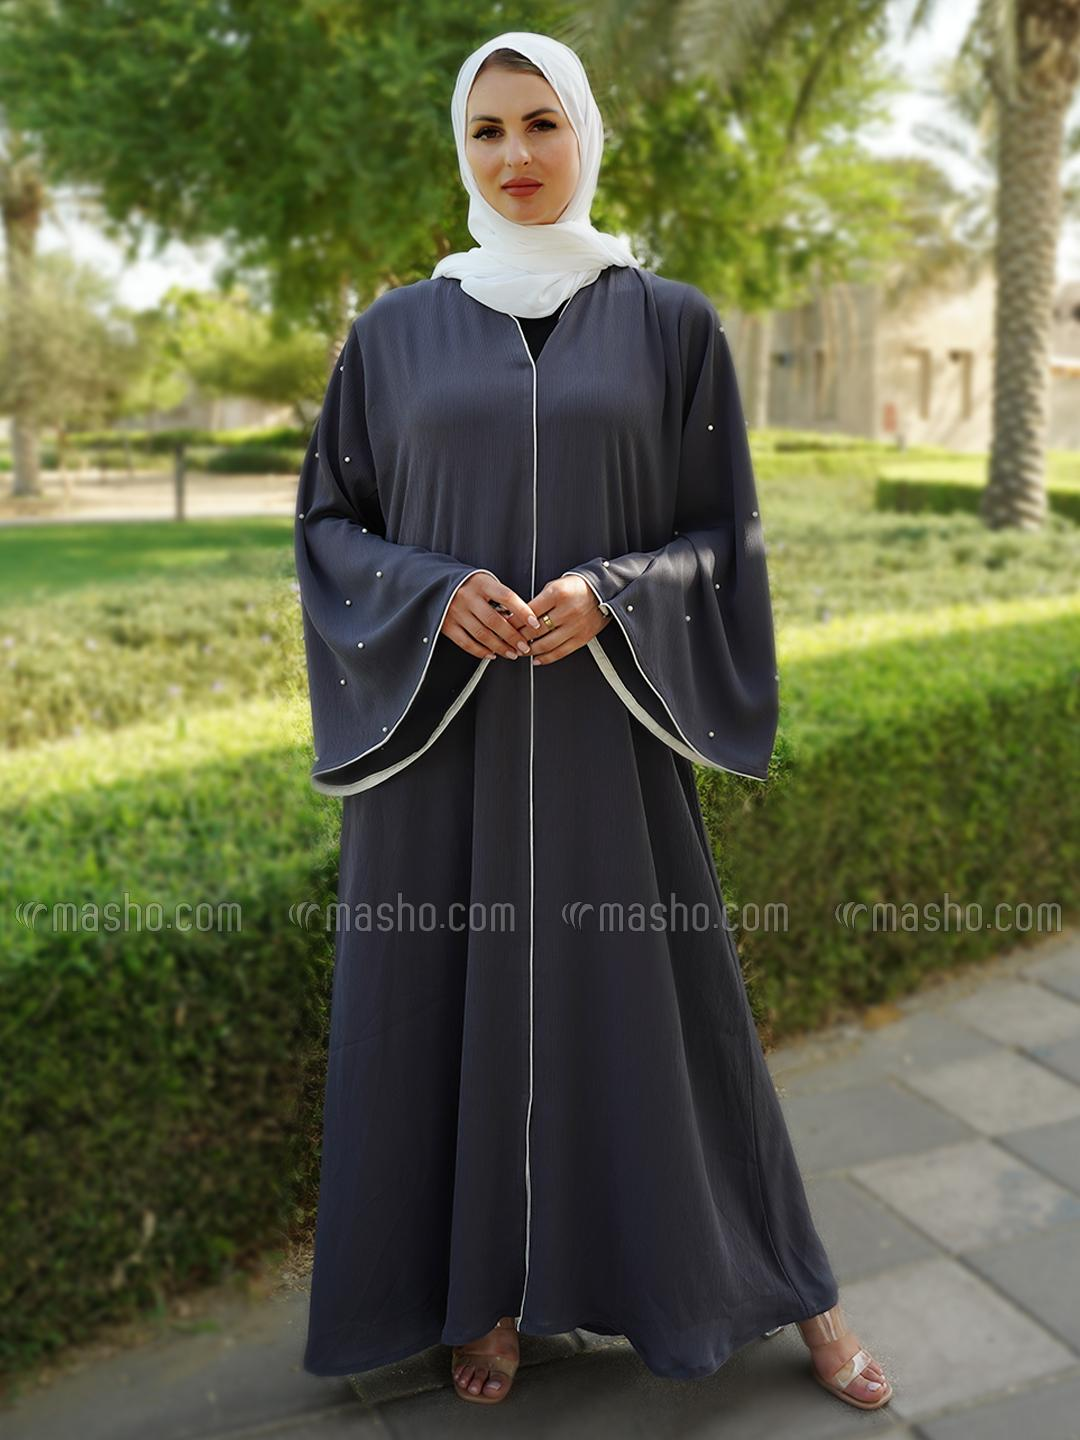 Indonesian Zoom Simple Free Size Abaya With White Pearl Work On Sleeve With Piping In Dark Grey